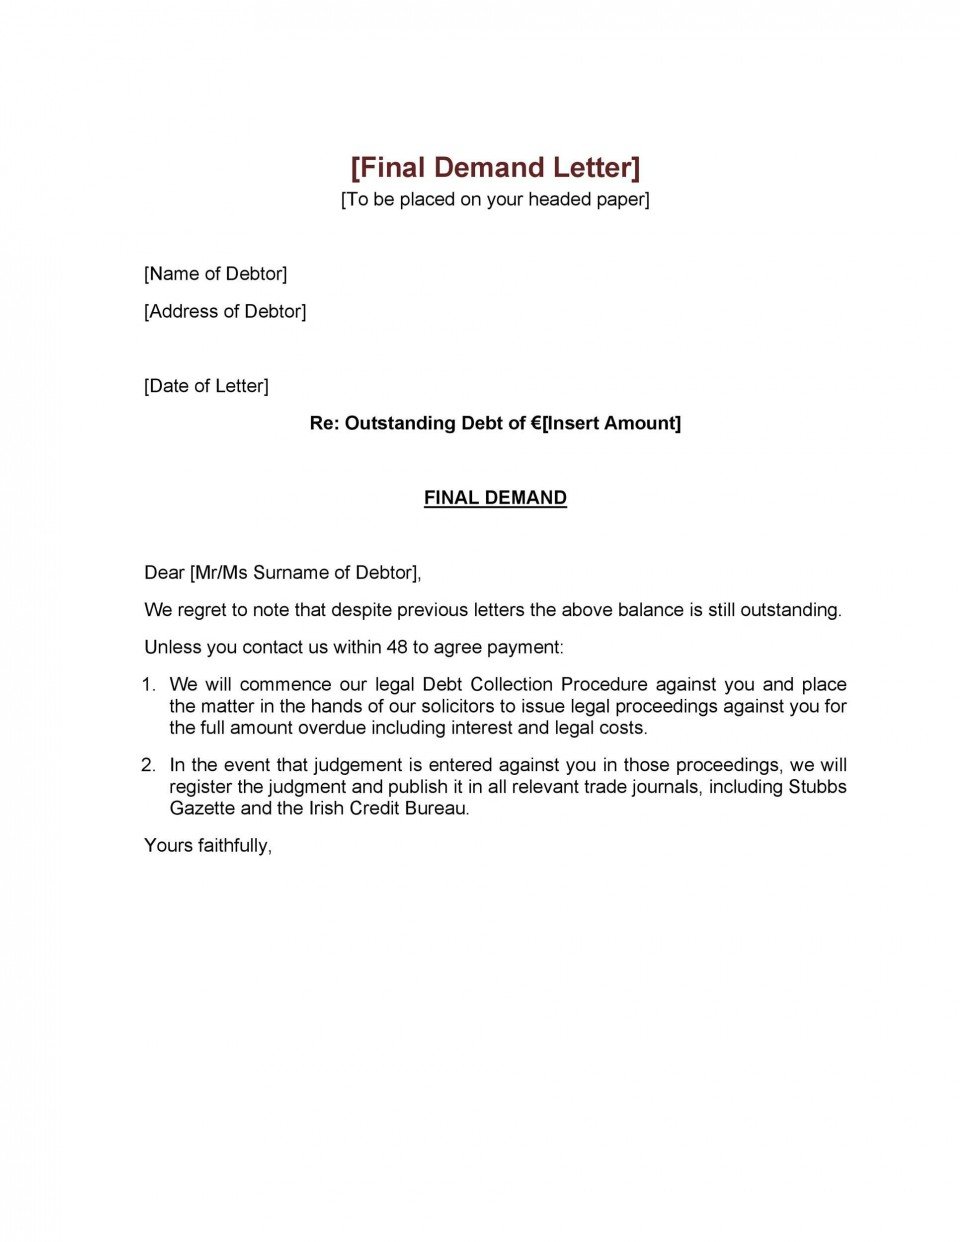 006 Astounding Final Payment Demand Letter Template Inspiration  For Uk960